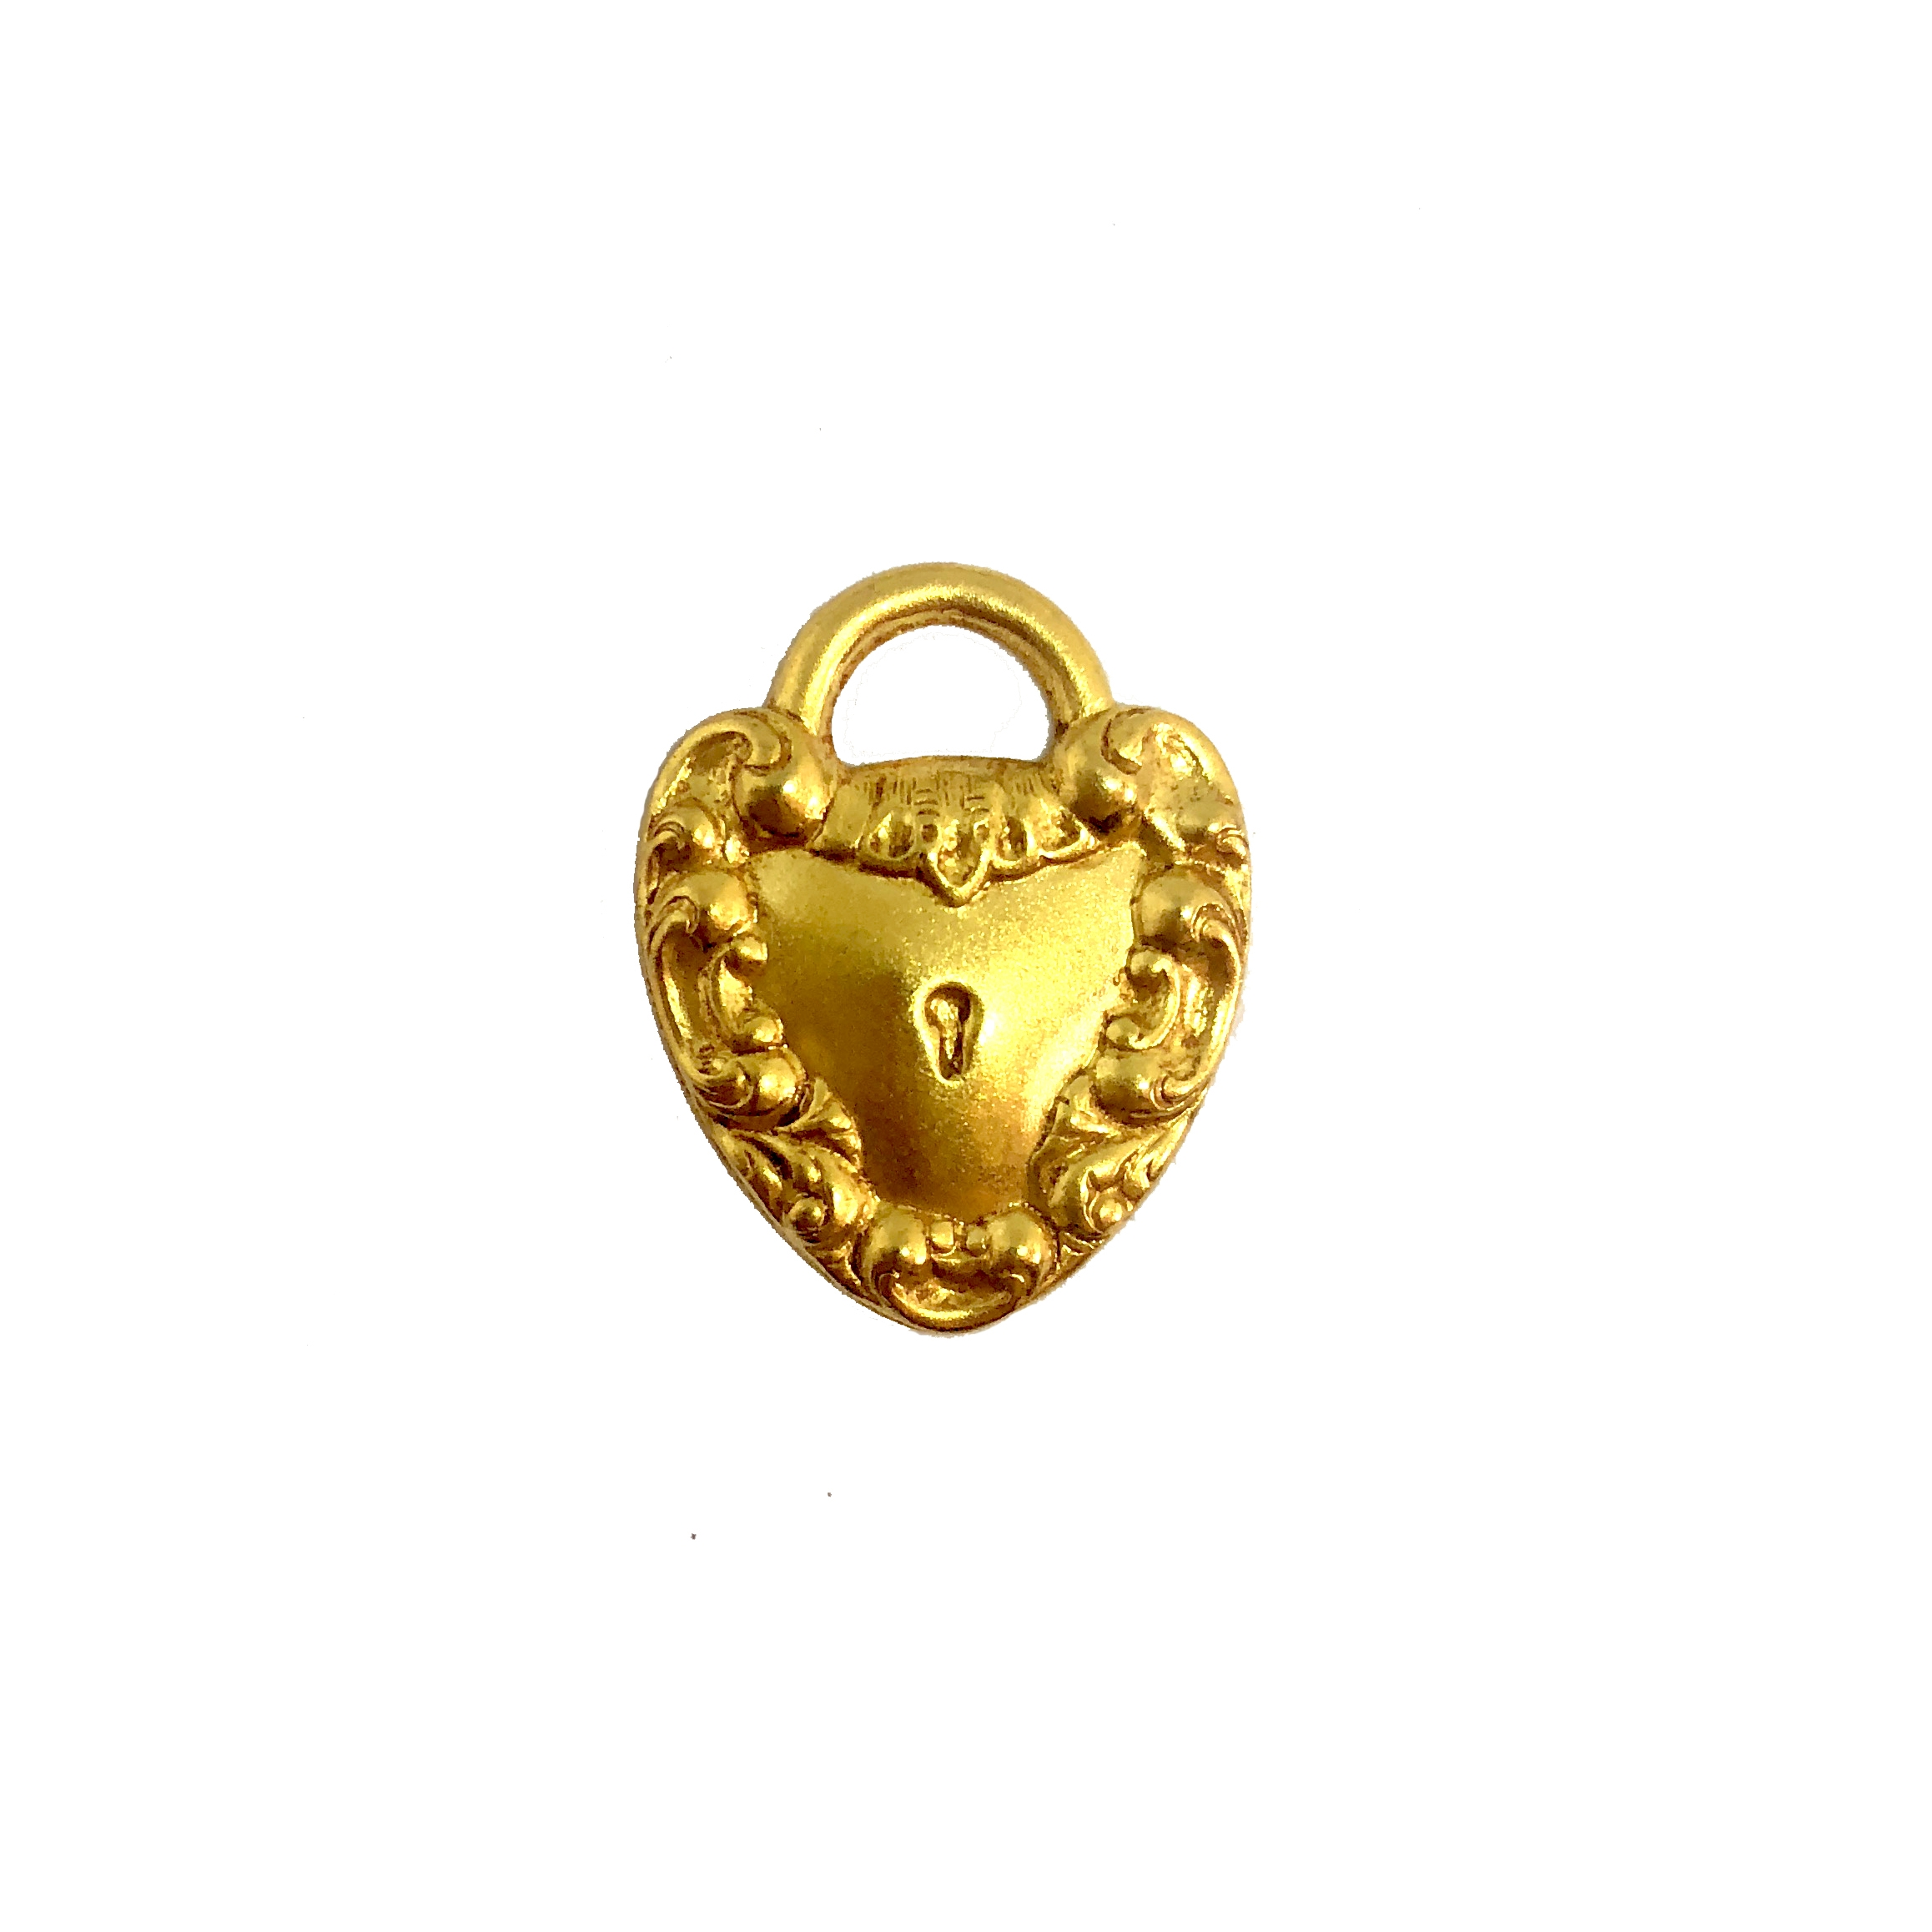 heart lock, heart charm, classic gold, 08485, gold, charm, lock, Bsue Boutiques, jewelry supplies, gold plated, heart